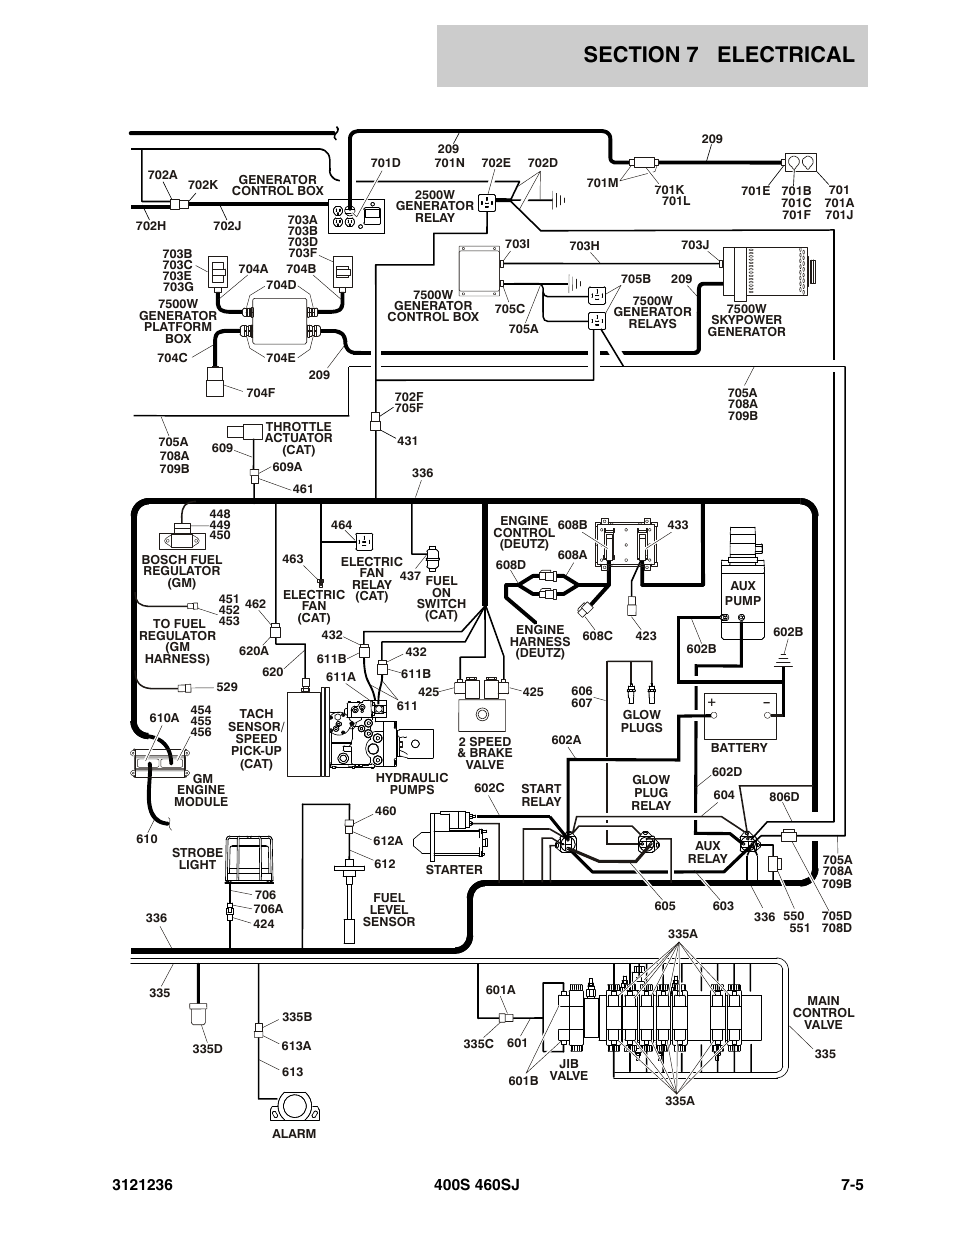 1999 10054 Skytrak Ke Wiring Diagram. . Wiring Diagram on